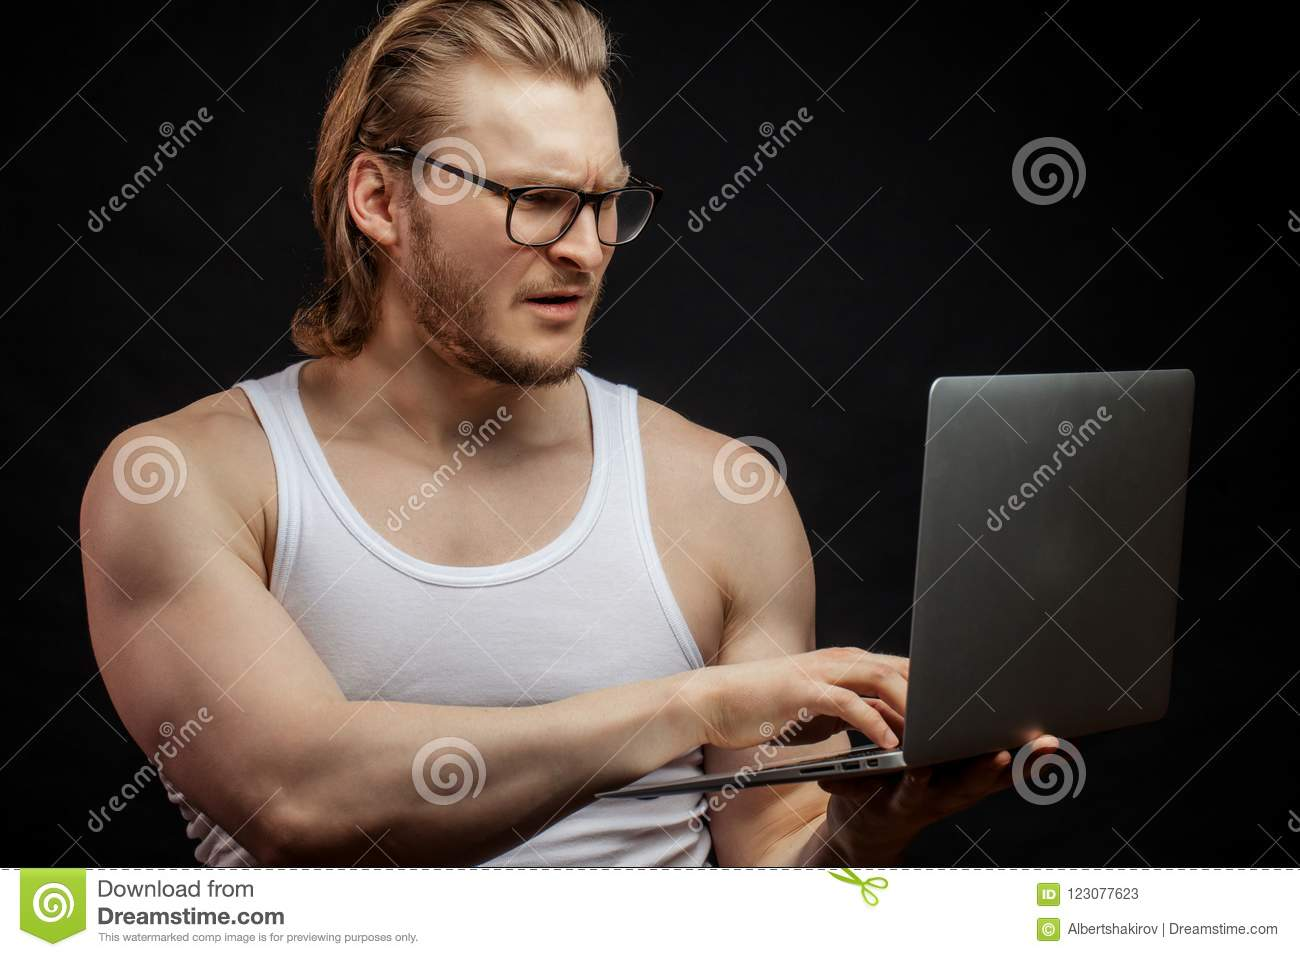 Muscular athlet learning to work with computer